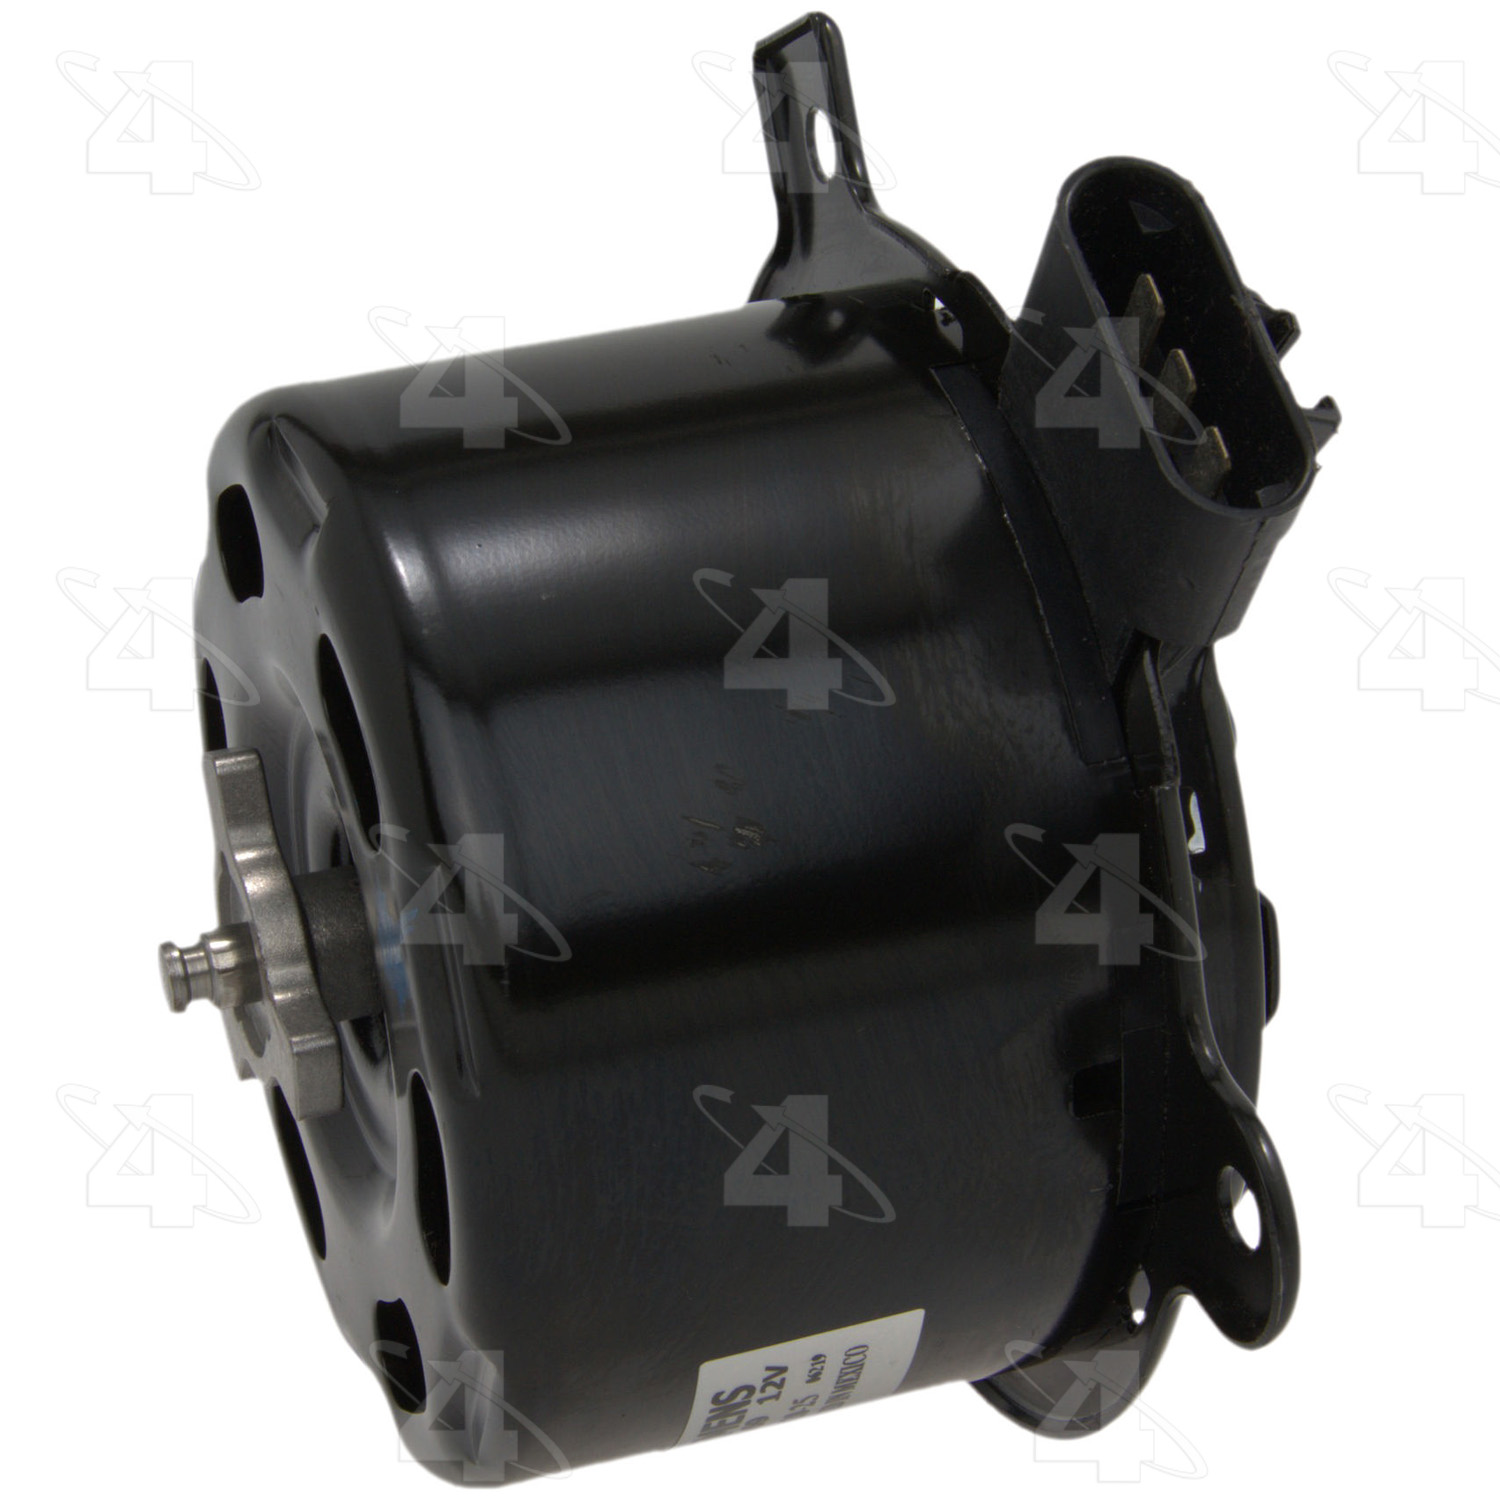 Four Seasons 75721 Engine Cooling Fan Motor Fits 1998-2000 Ford Mustang